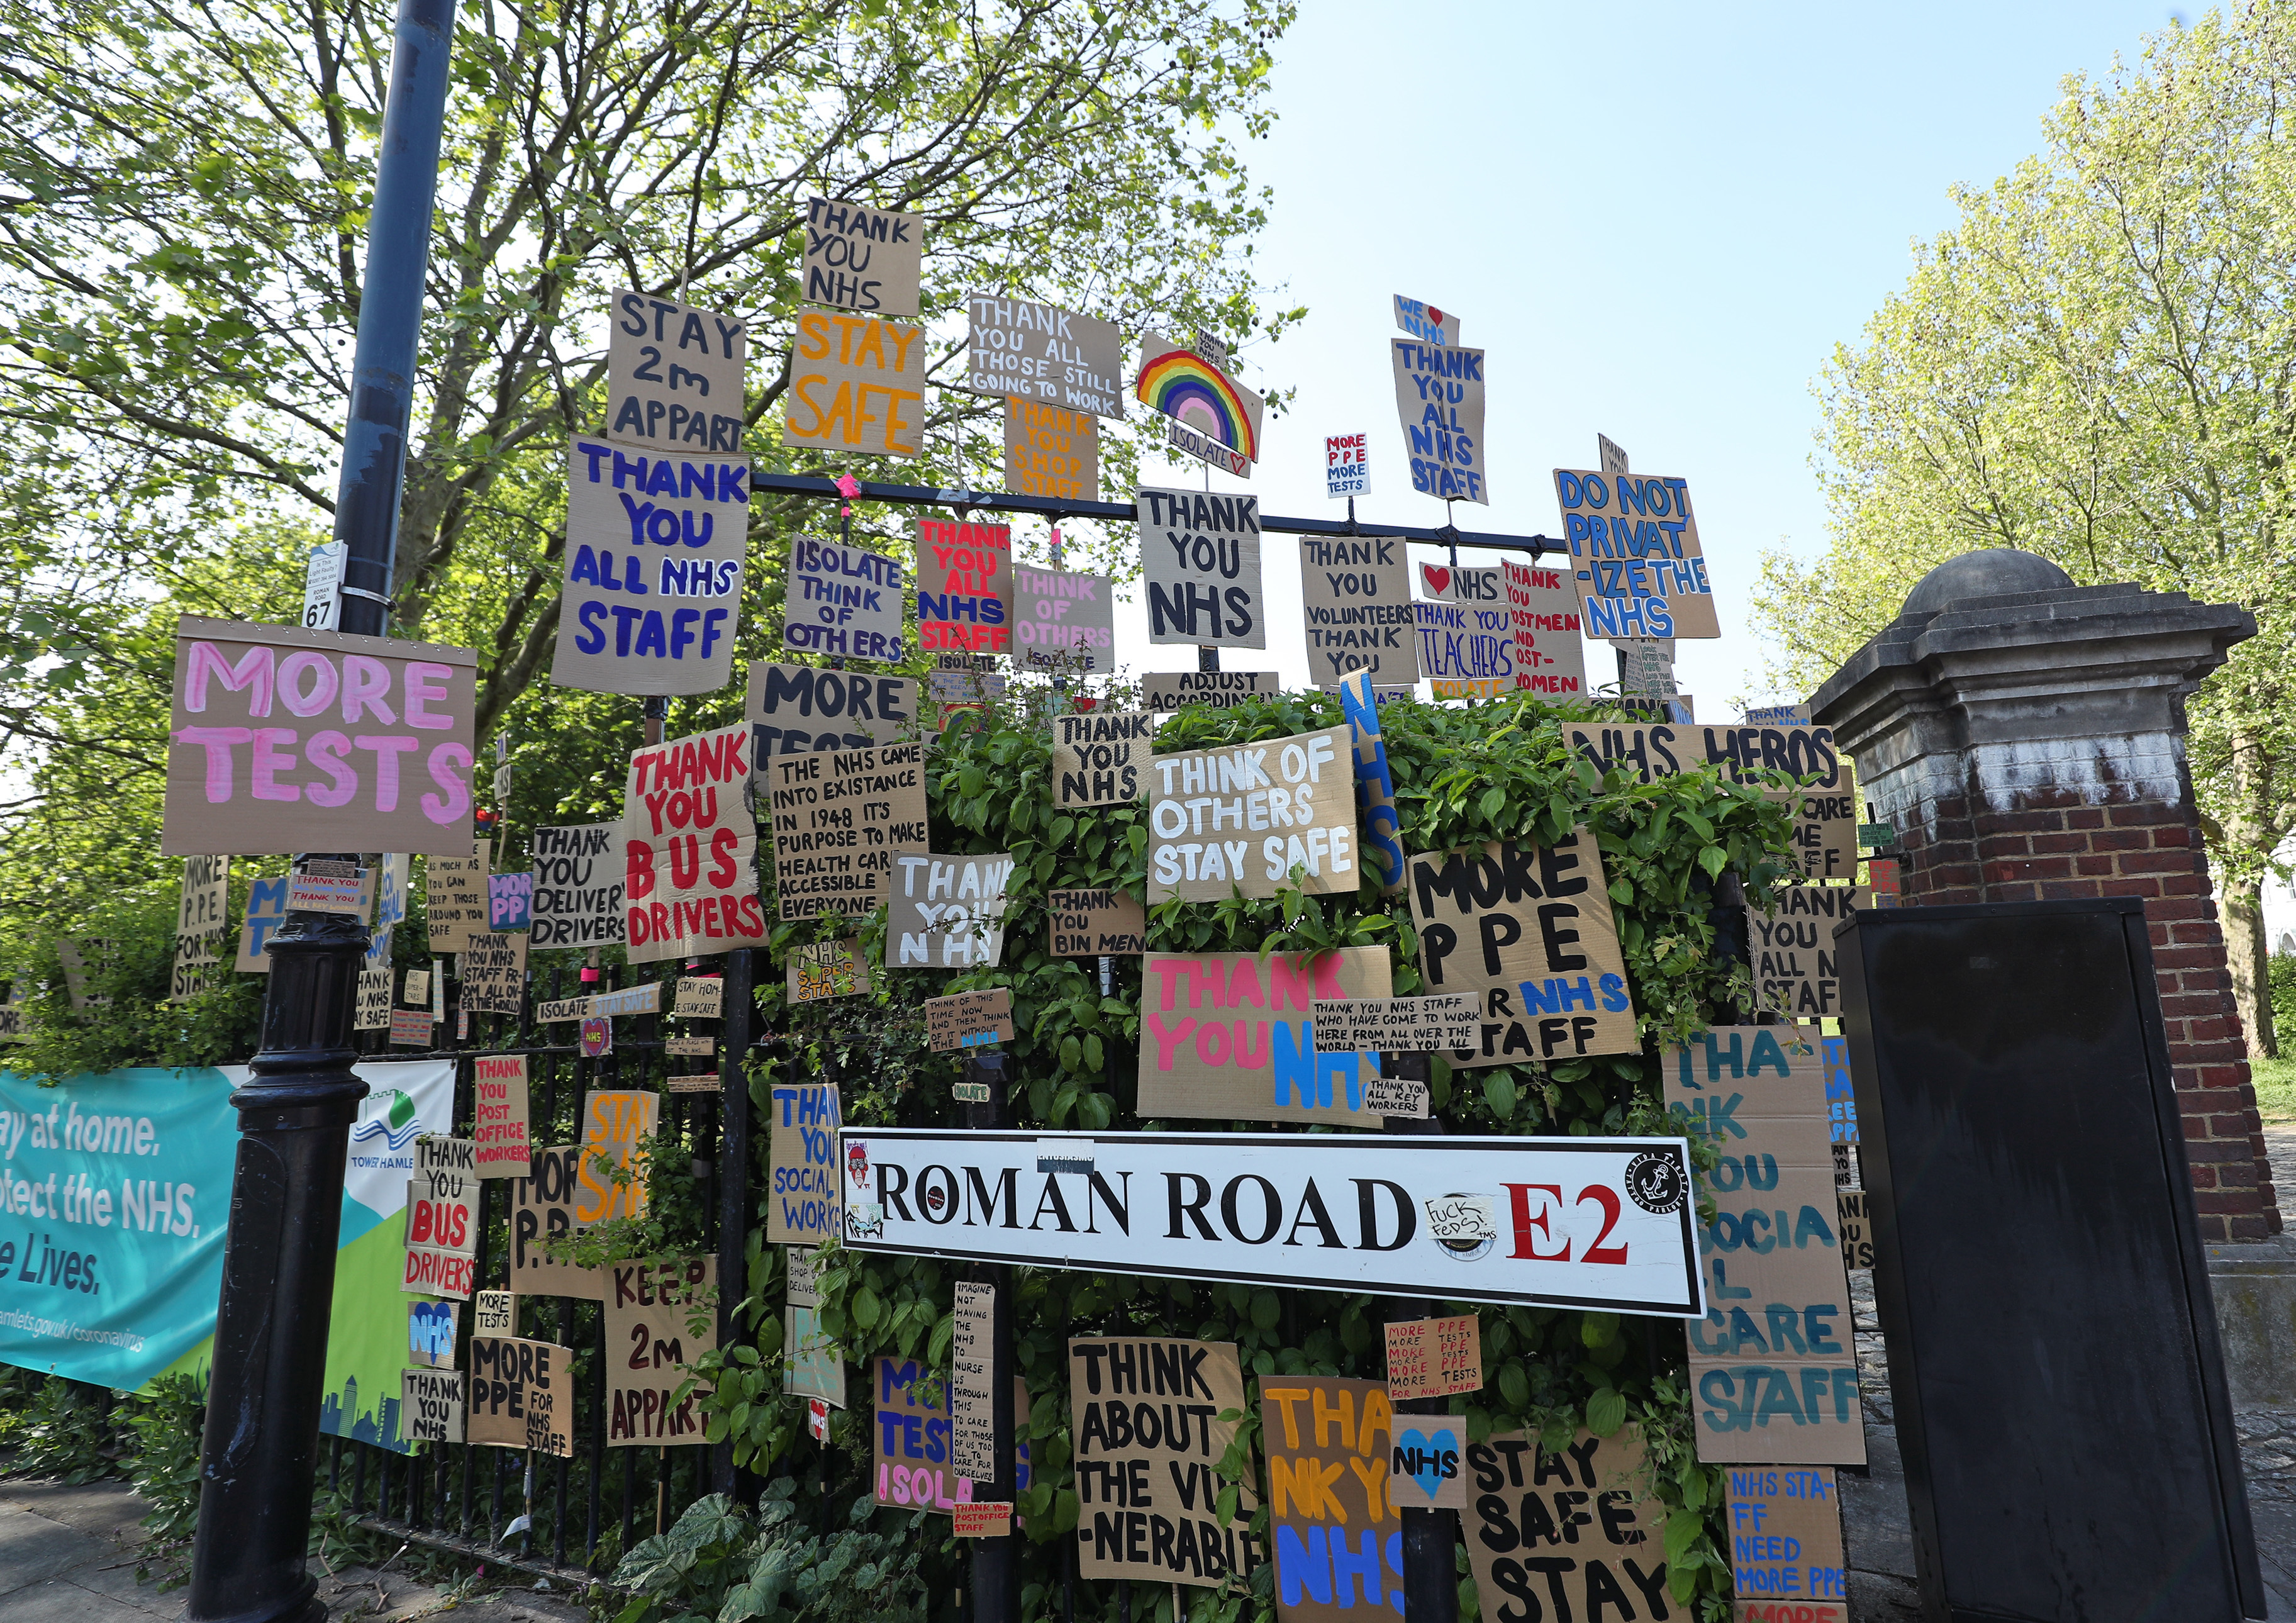 Handmade signs in support of the NHS on Roman Road in east London, as the UK continues in lockdown to help curb the spread of the coronavirus.